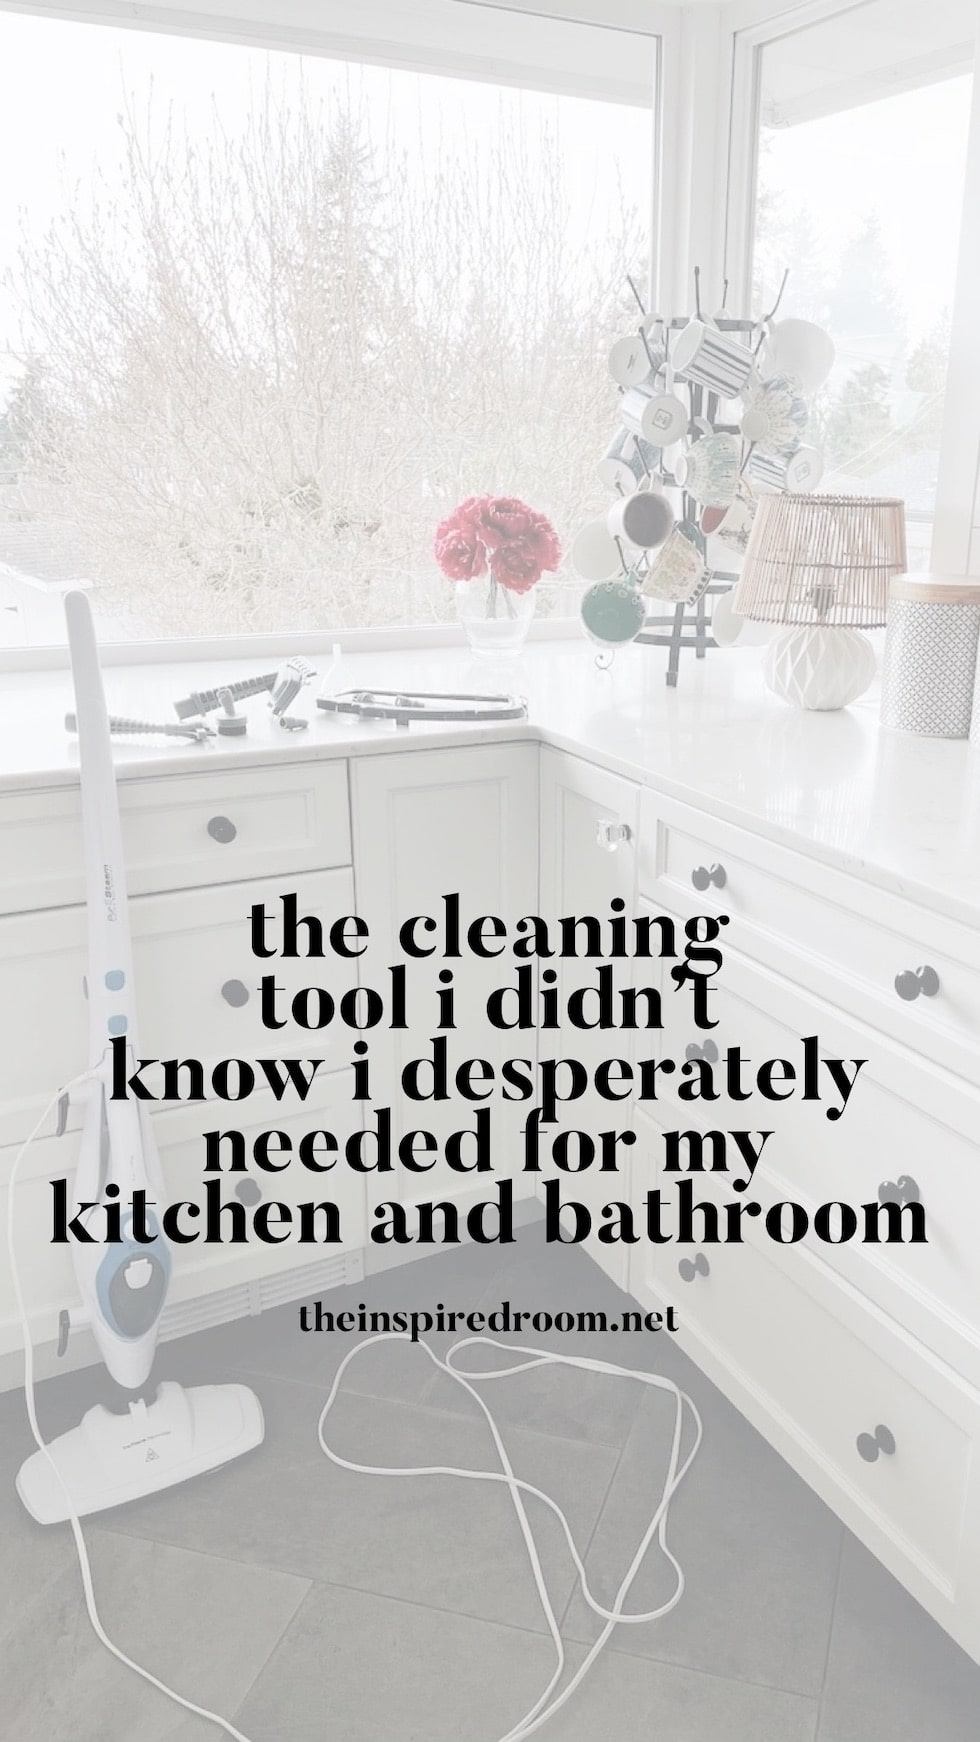 The Cleaning Tool I Didn't Know I Desperately Needed for My Kitchen and Bathroom!